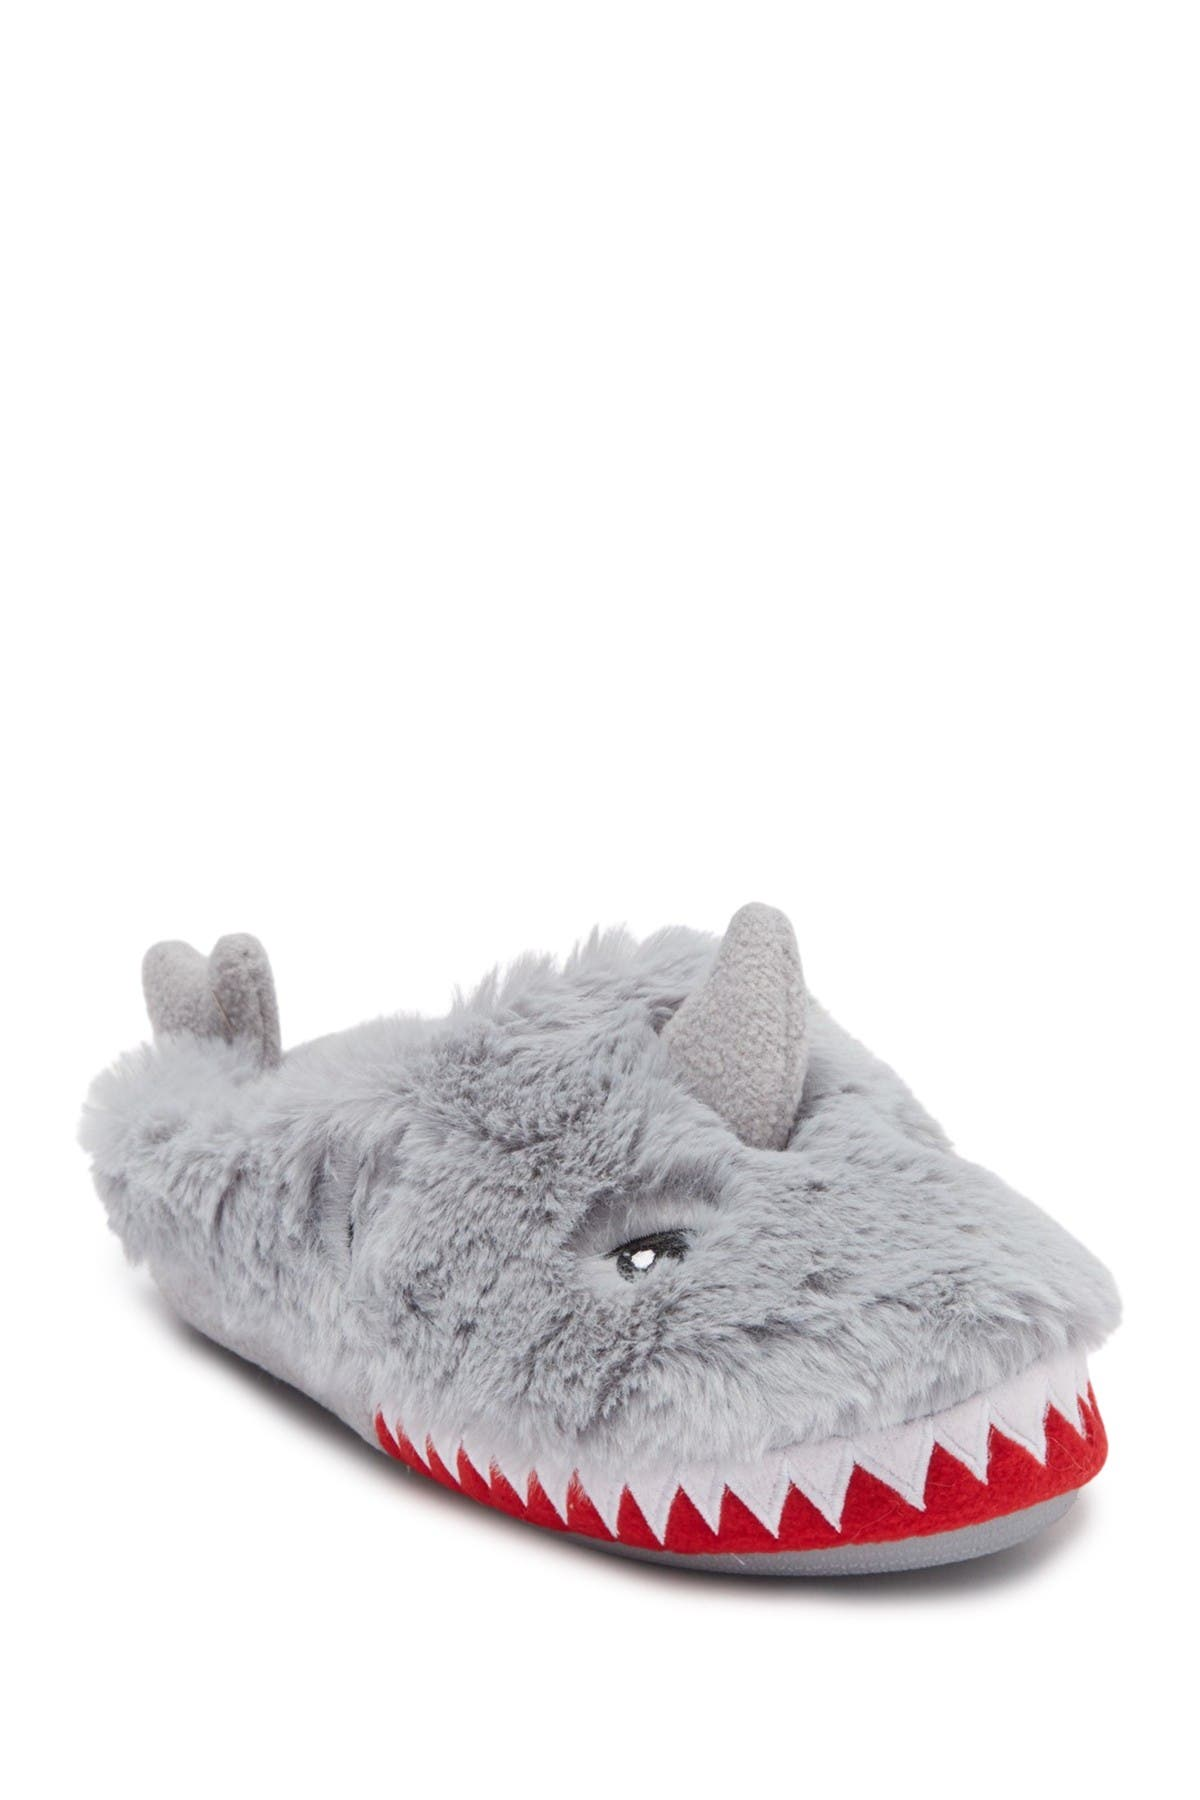 Image of Harper Canyon Shark Slipper